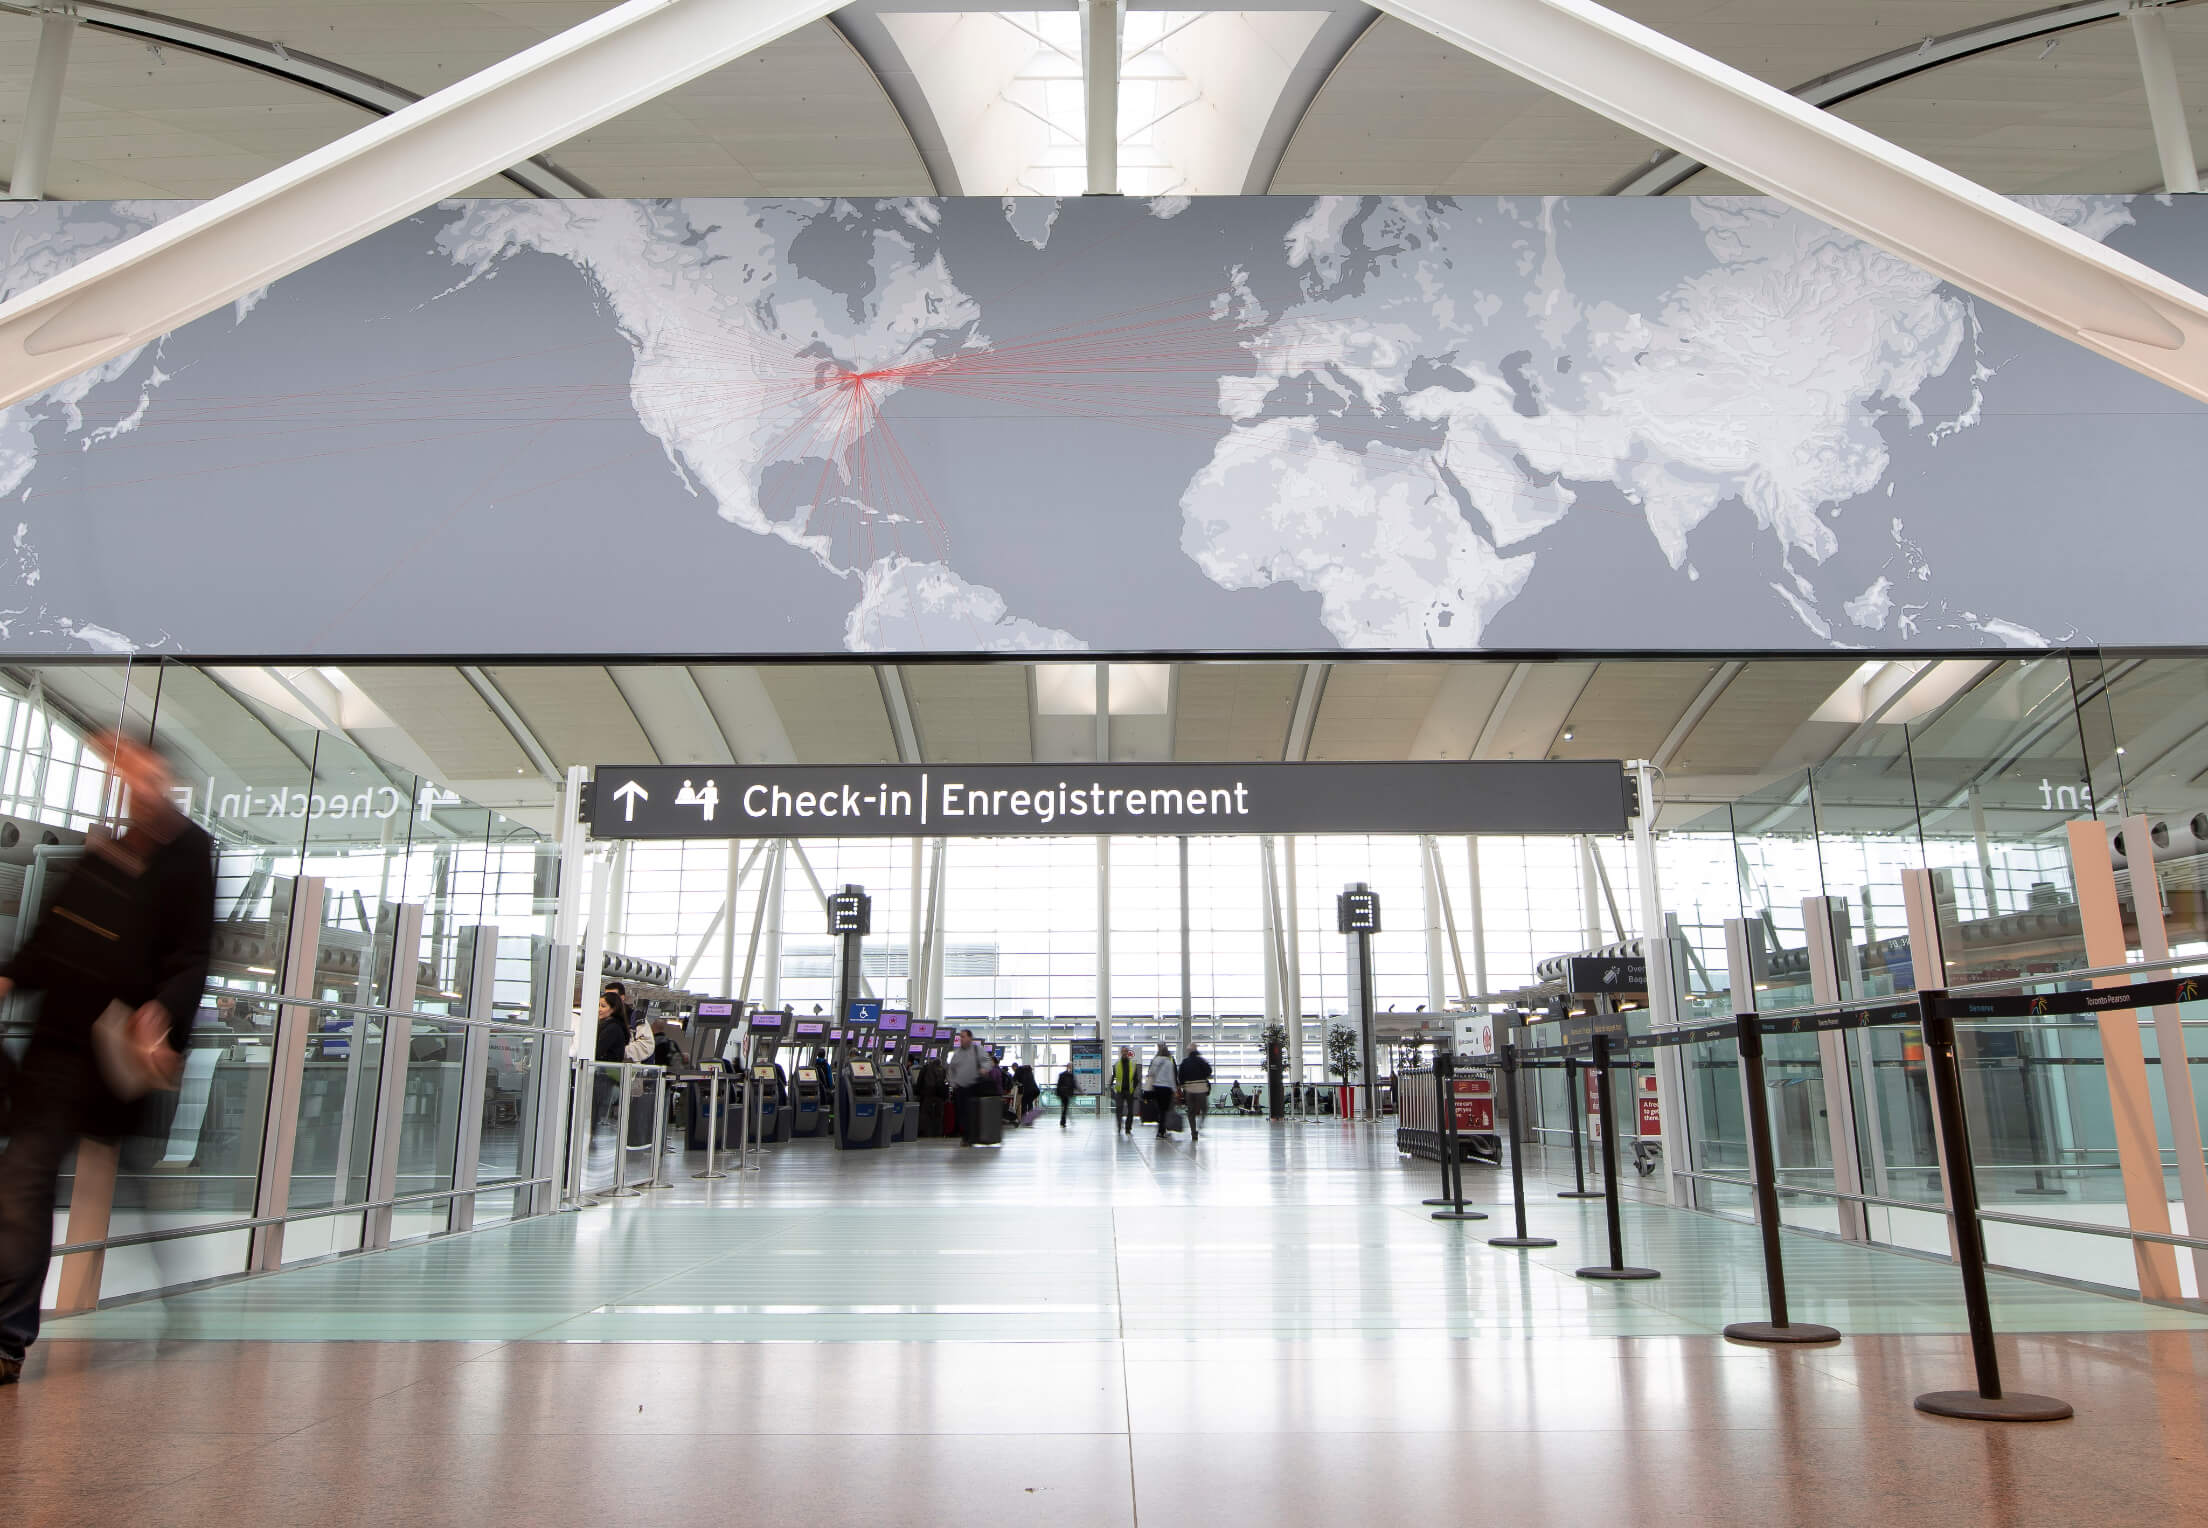 The inside of Toronto Pearson Airport, at the check-in area